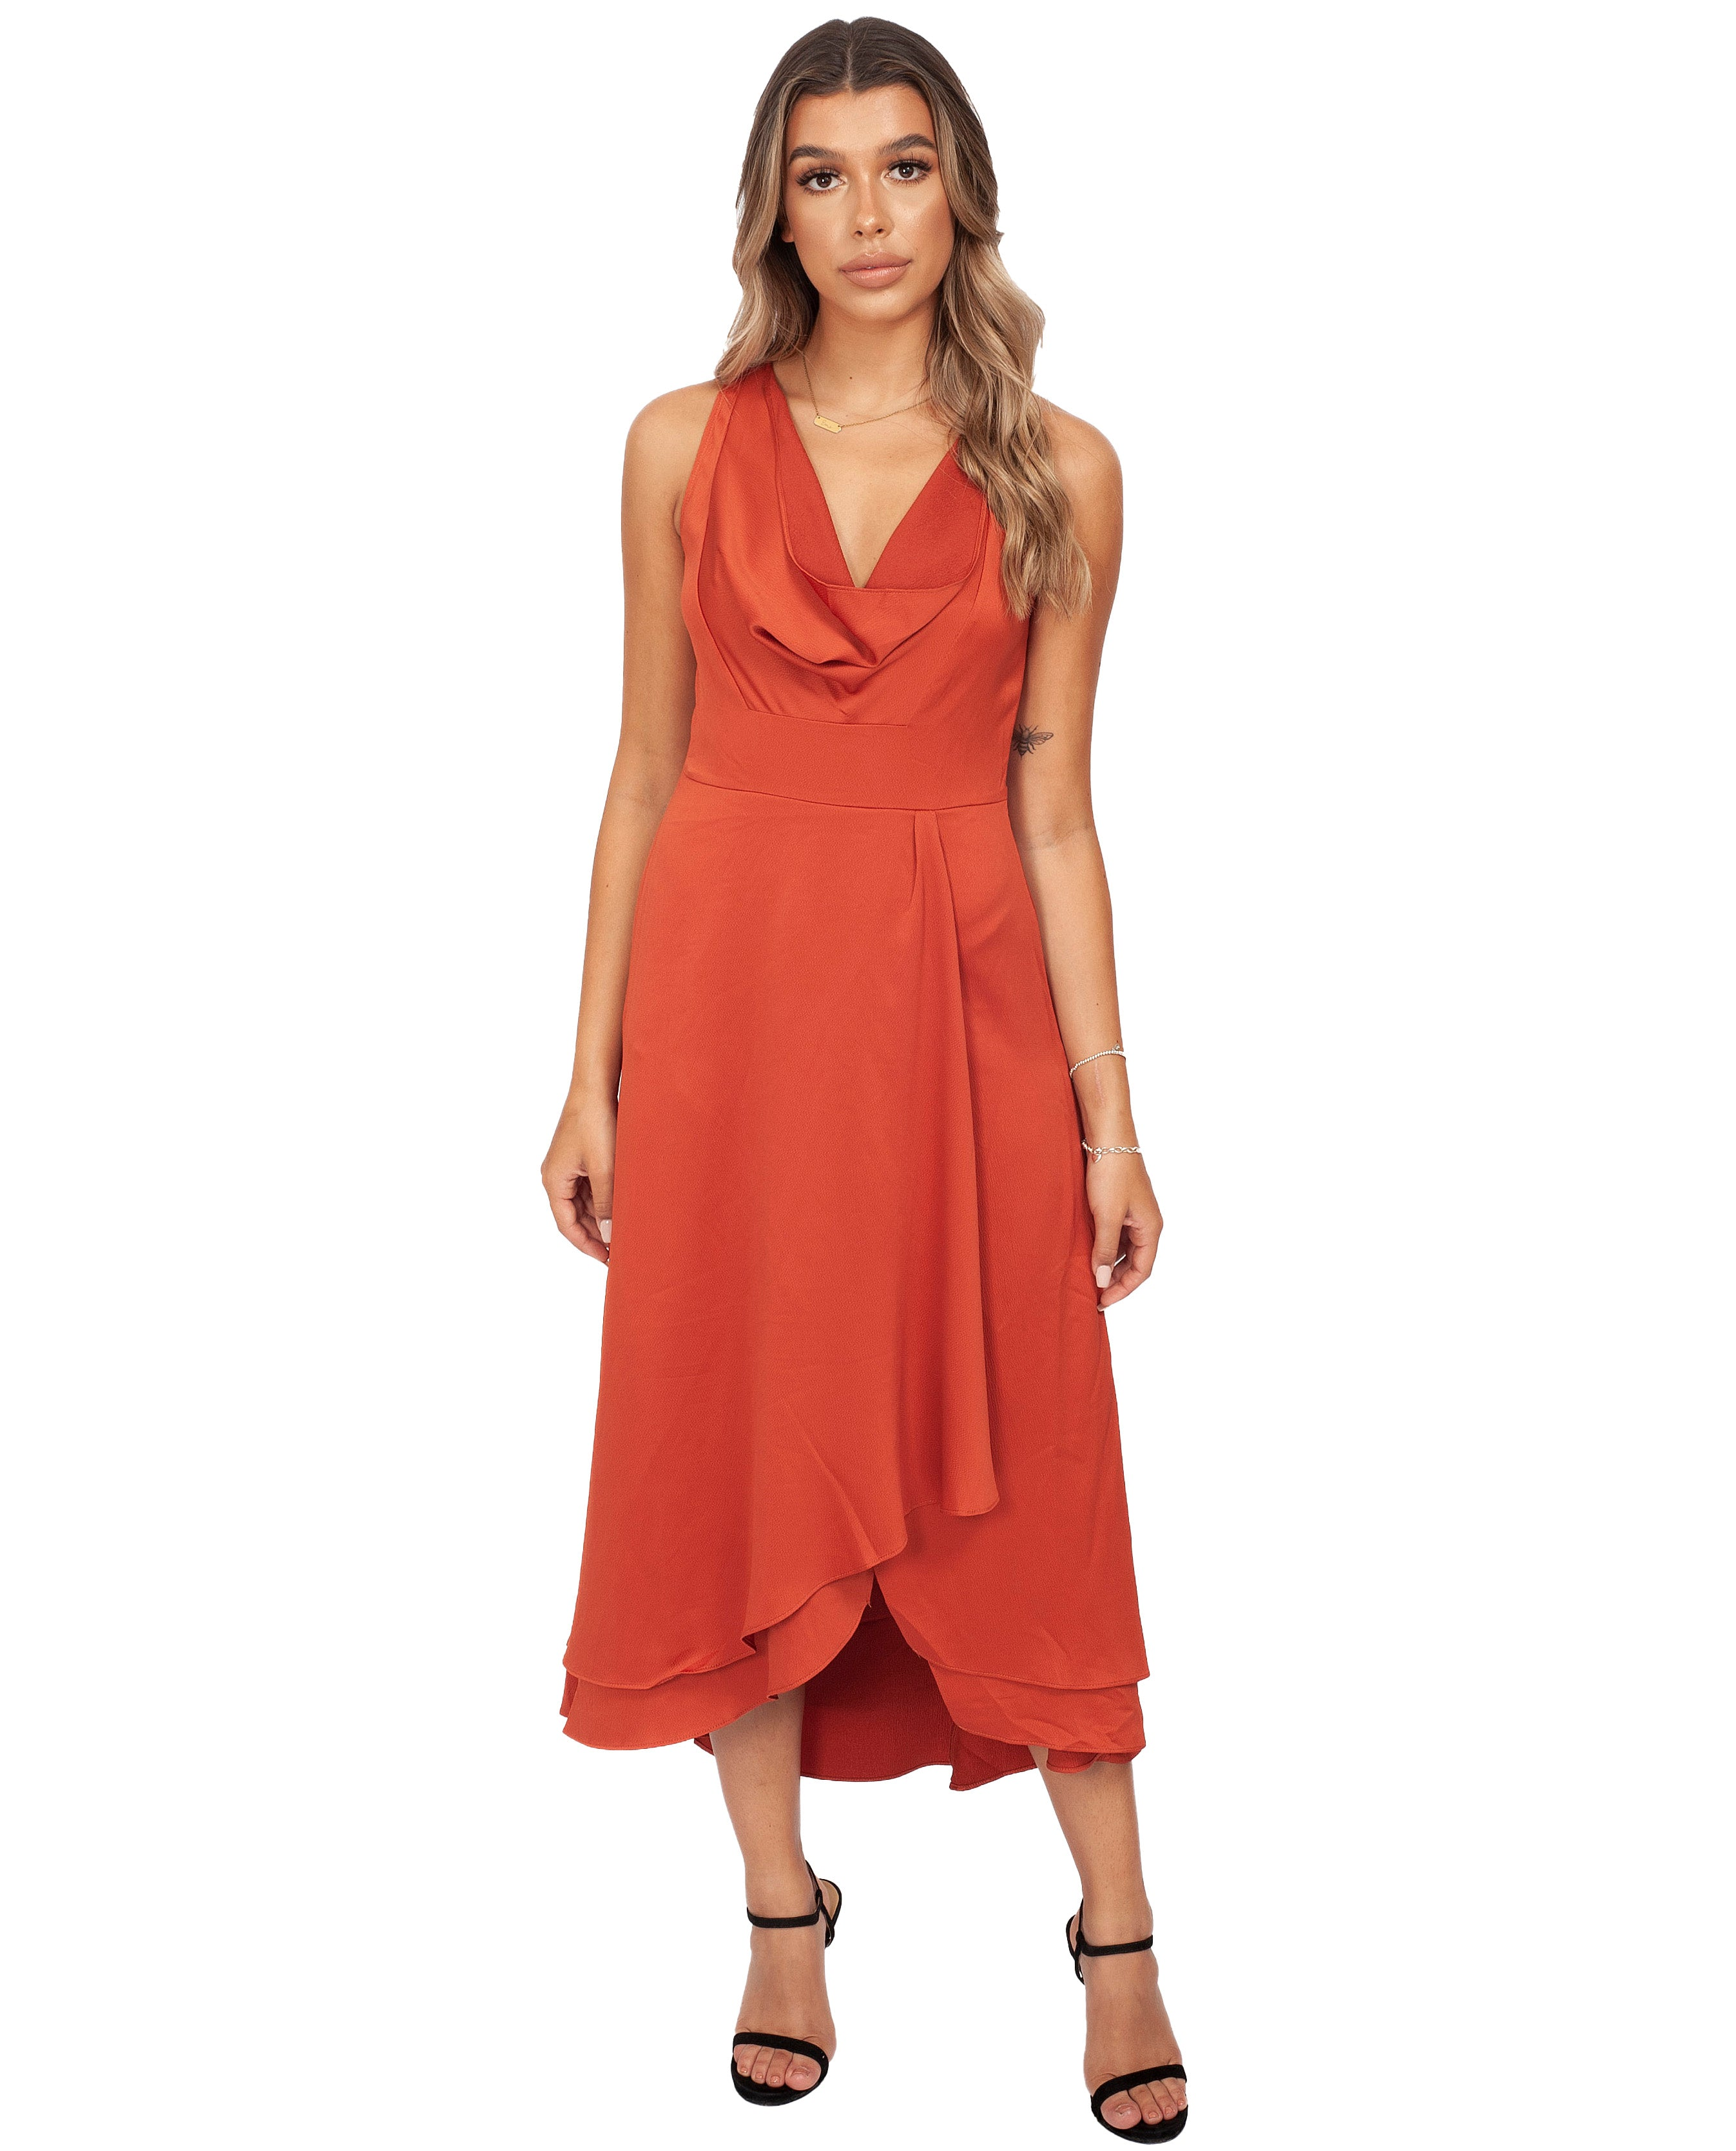 FRENCH CONNECTION CINNAMON SATIN COWL NECK MIDI DRESS